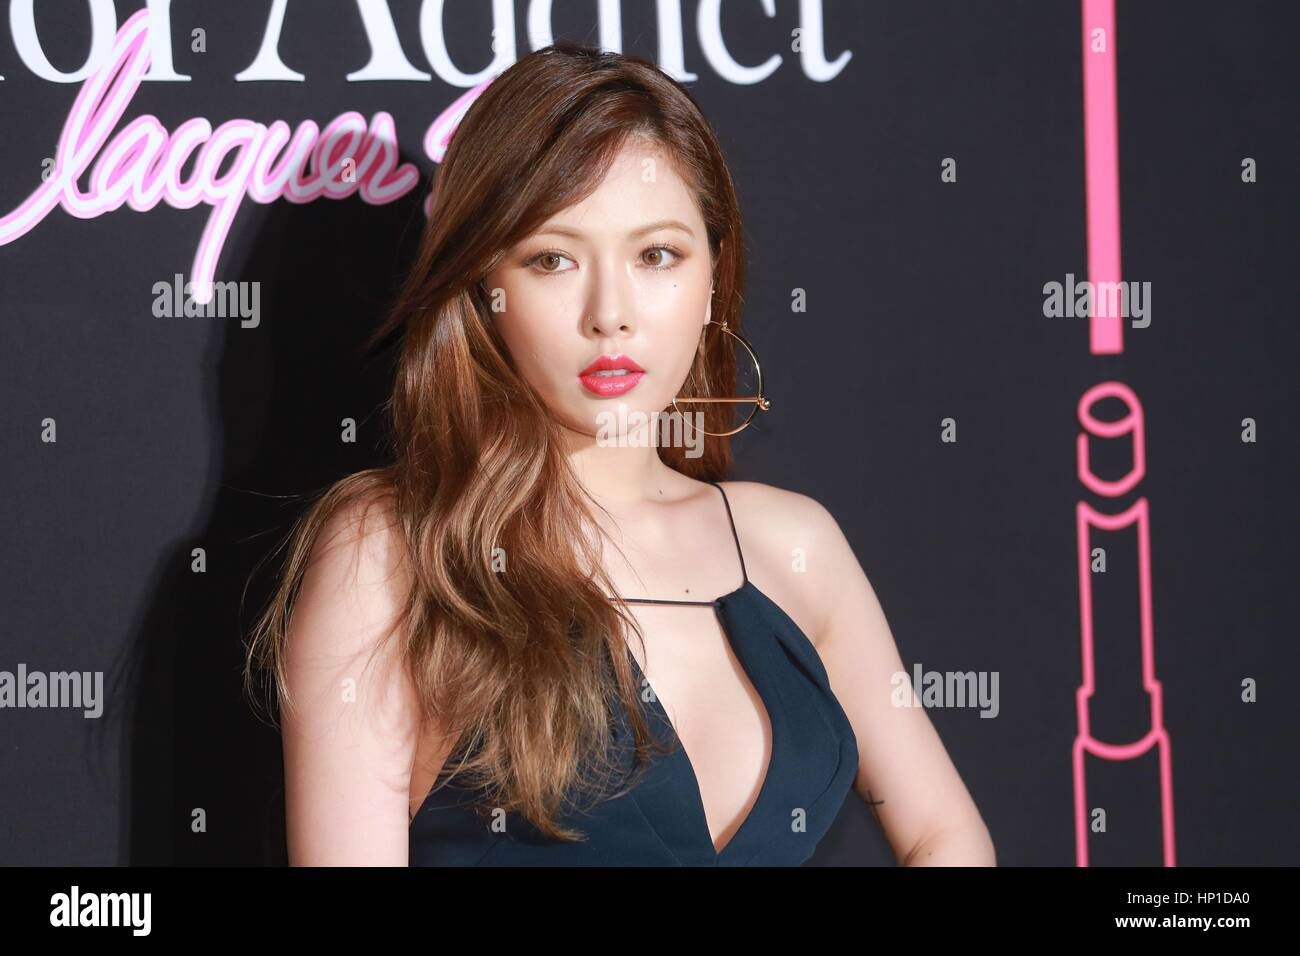 Seoul, Korea. 16th Feb, 2017. Hyoyeon, Uhm Ji won, Daniel Heini, HyunA attend Creative Book celebration party photo - Stock Image